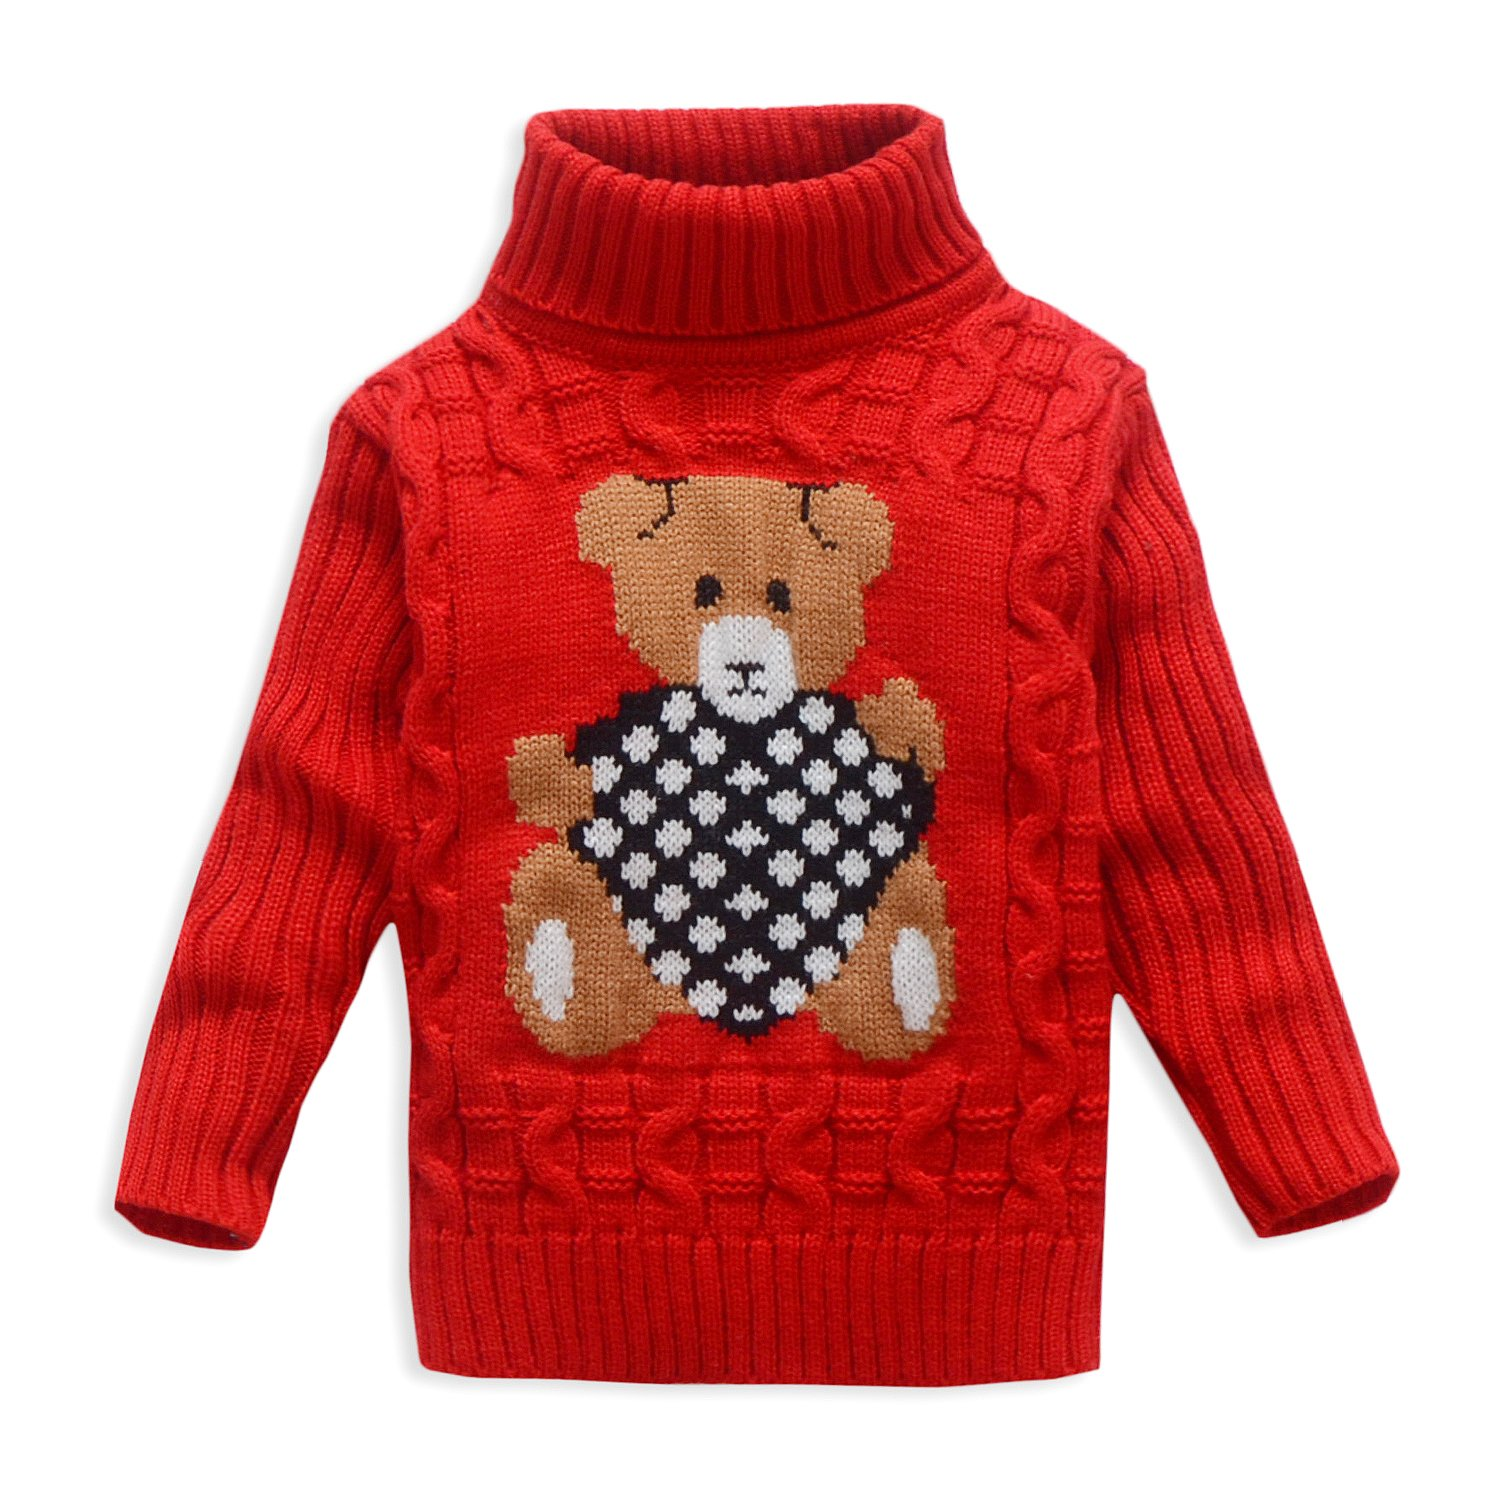 OUYAJI Boys and Girls Bear Pattern Warm Turtleneck sweater